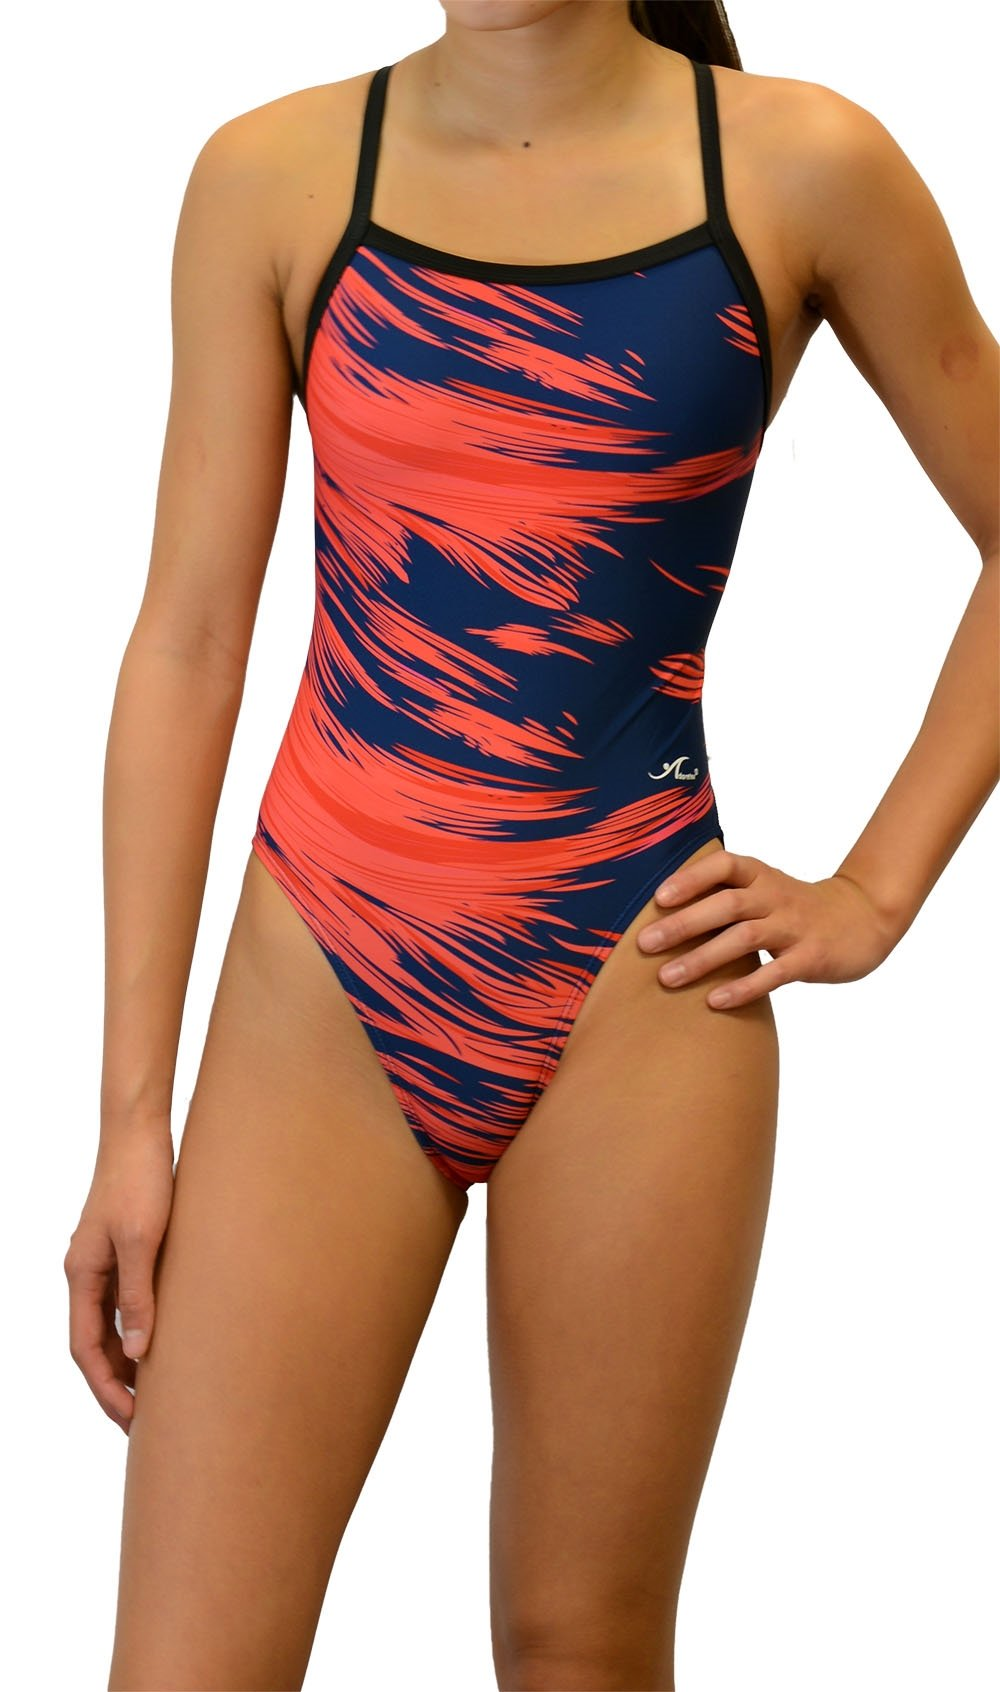 Adoretex Women's Pro One Piece Thin Strap Athletic Swimsuit (FN020) - Red - 36